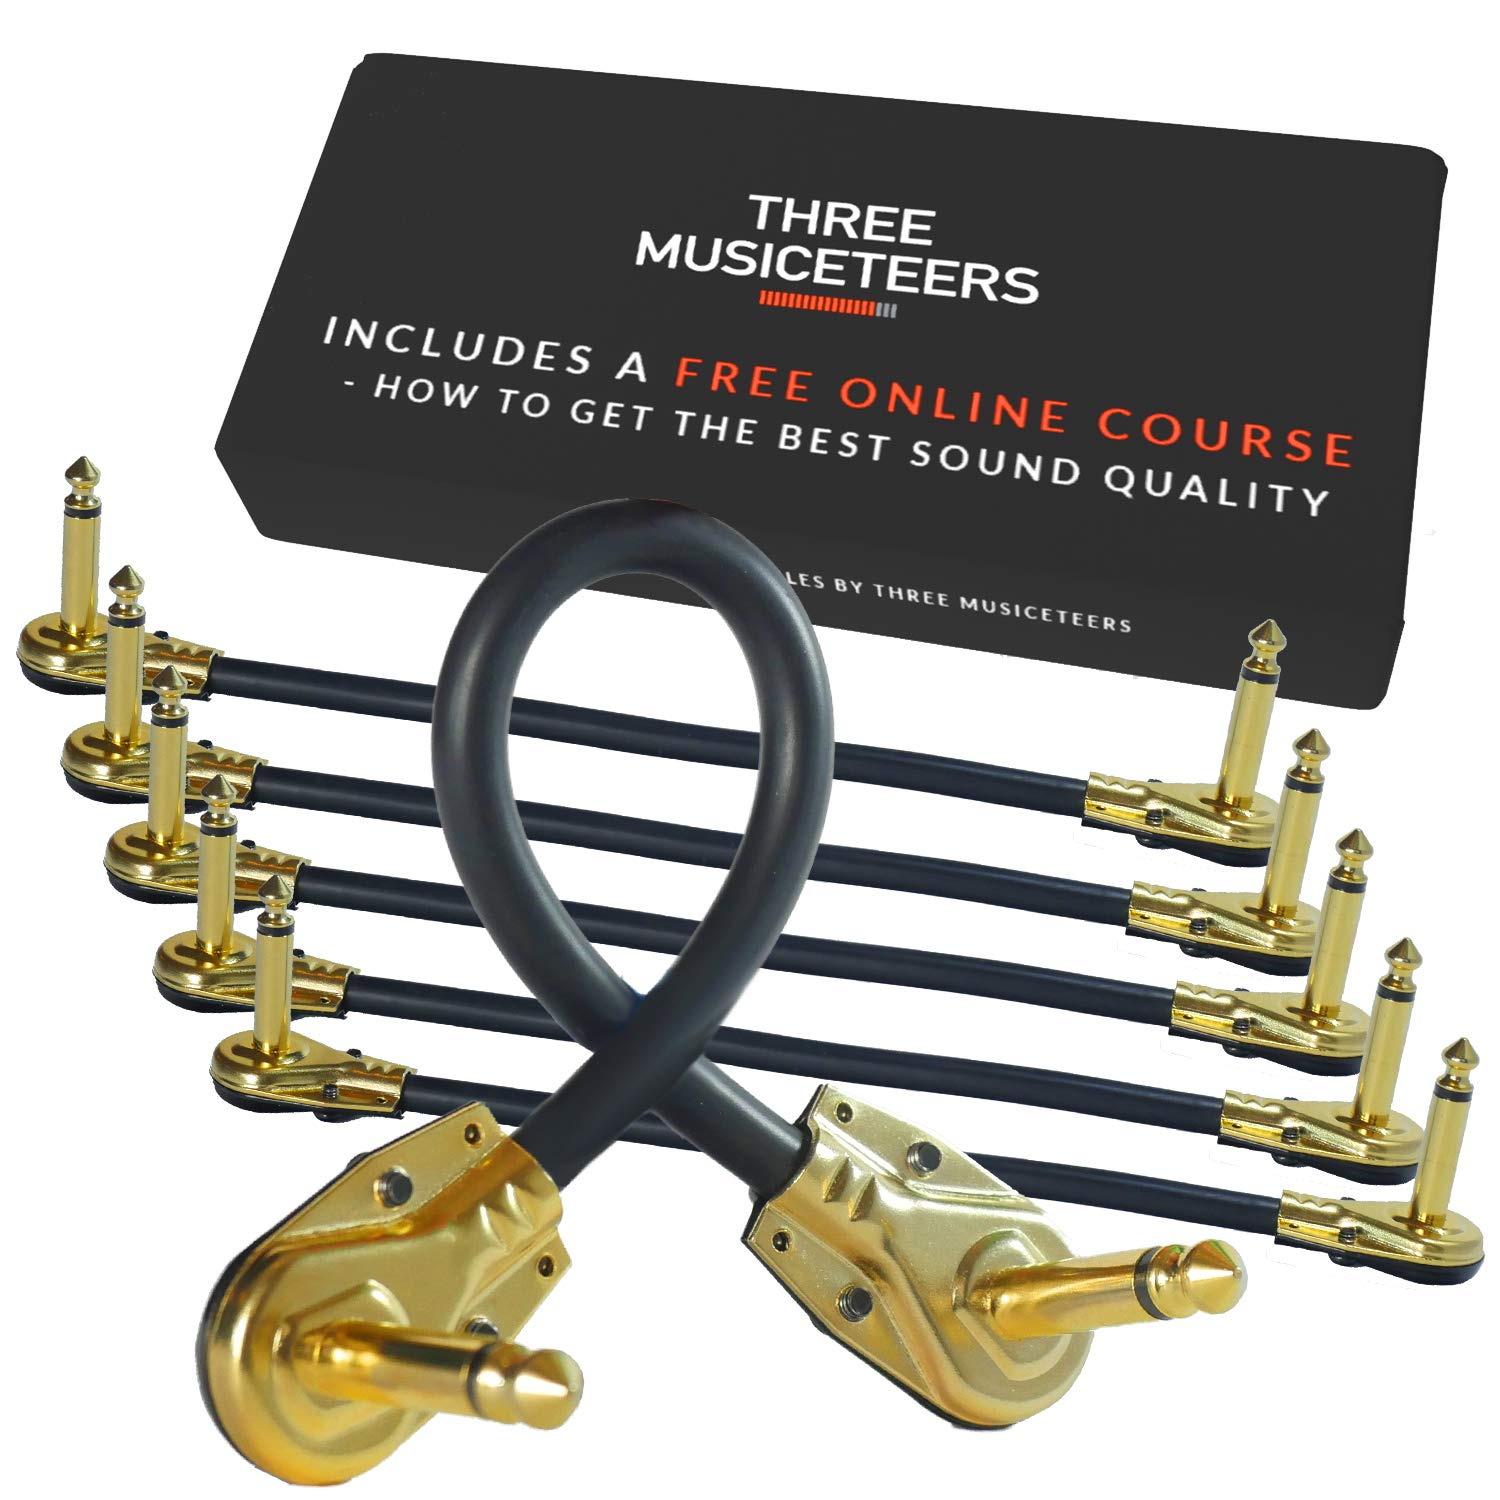 Guitar Patch Cables 6 Inch - Pedal Cable Kit 6 Pack - Best for Instrument Effects and Pedal Boards - Gold Plated Pedal Patch Cable Set - By The Three Musiceteers by The Three Musiceteers